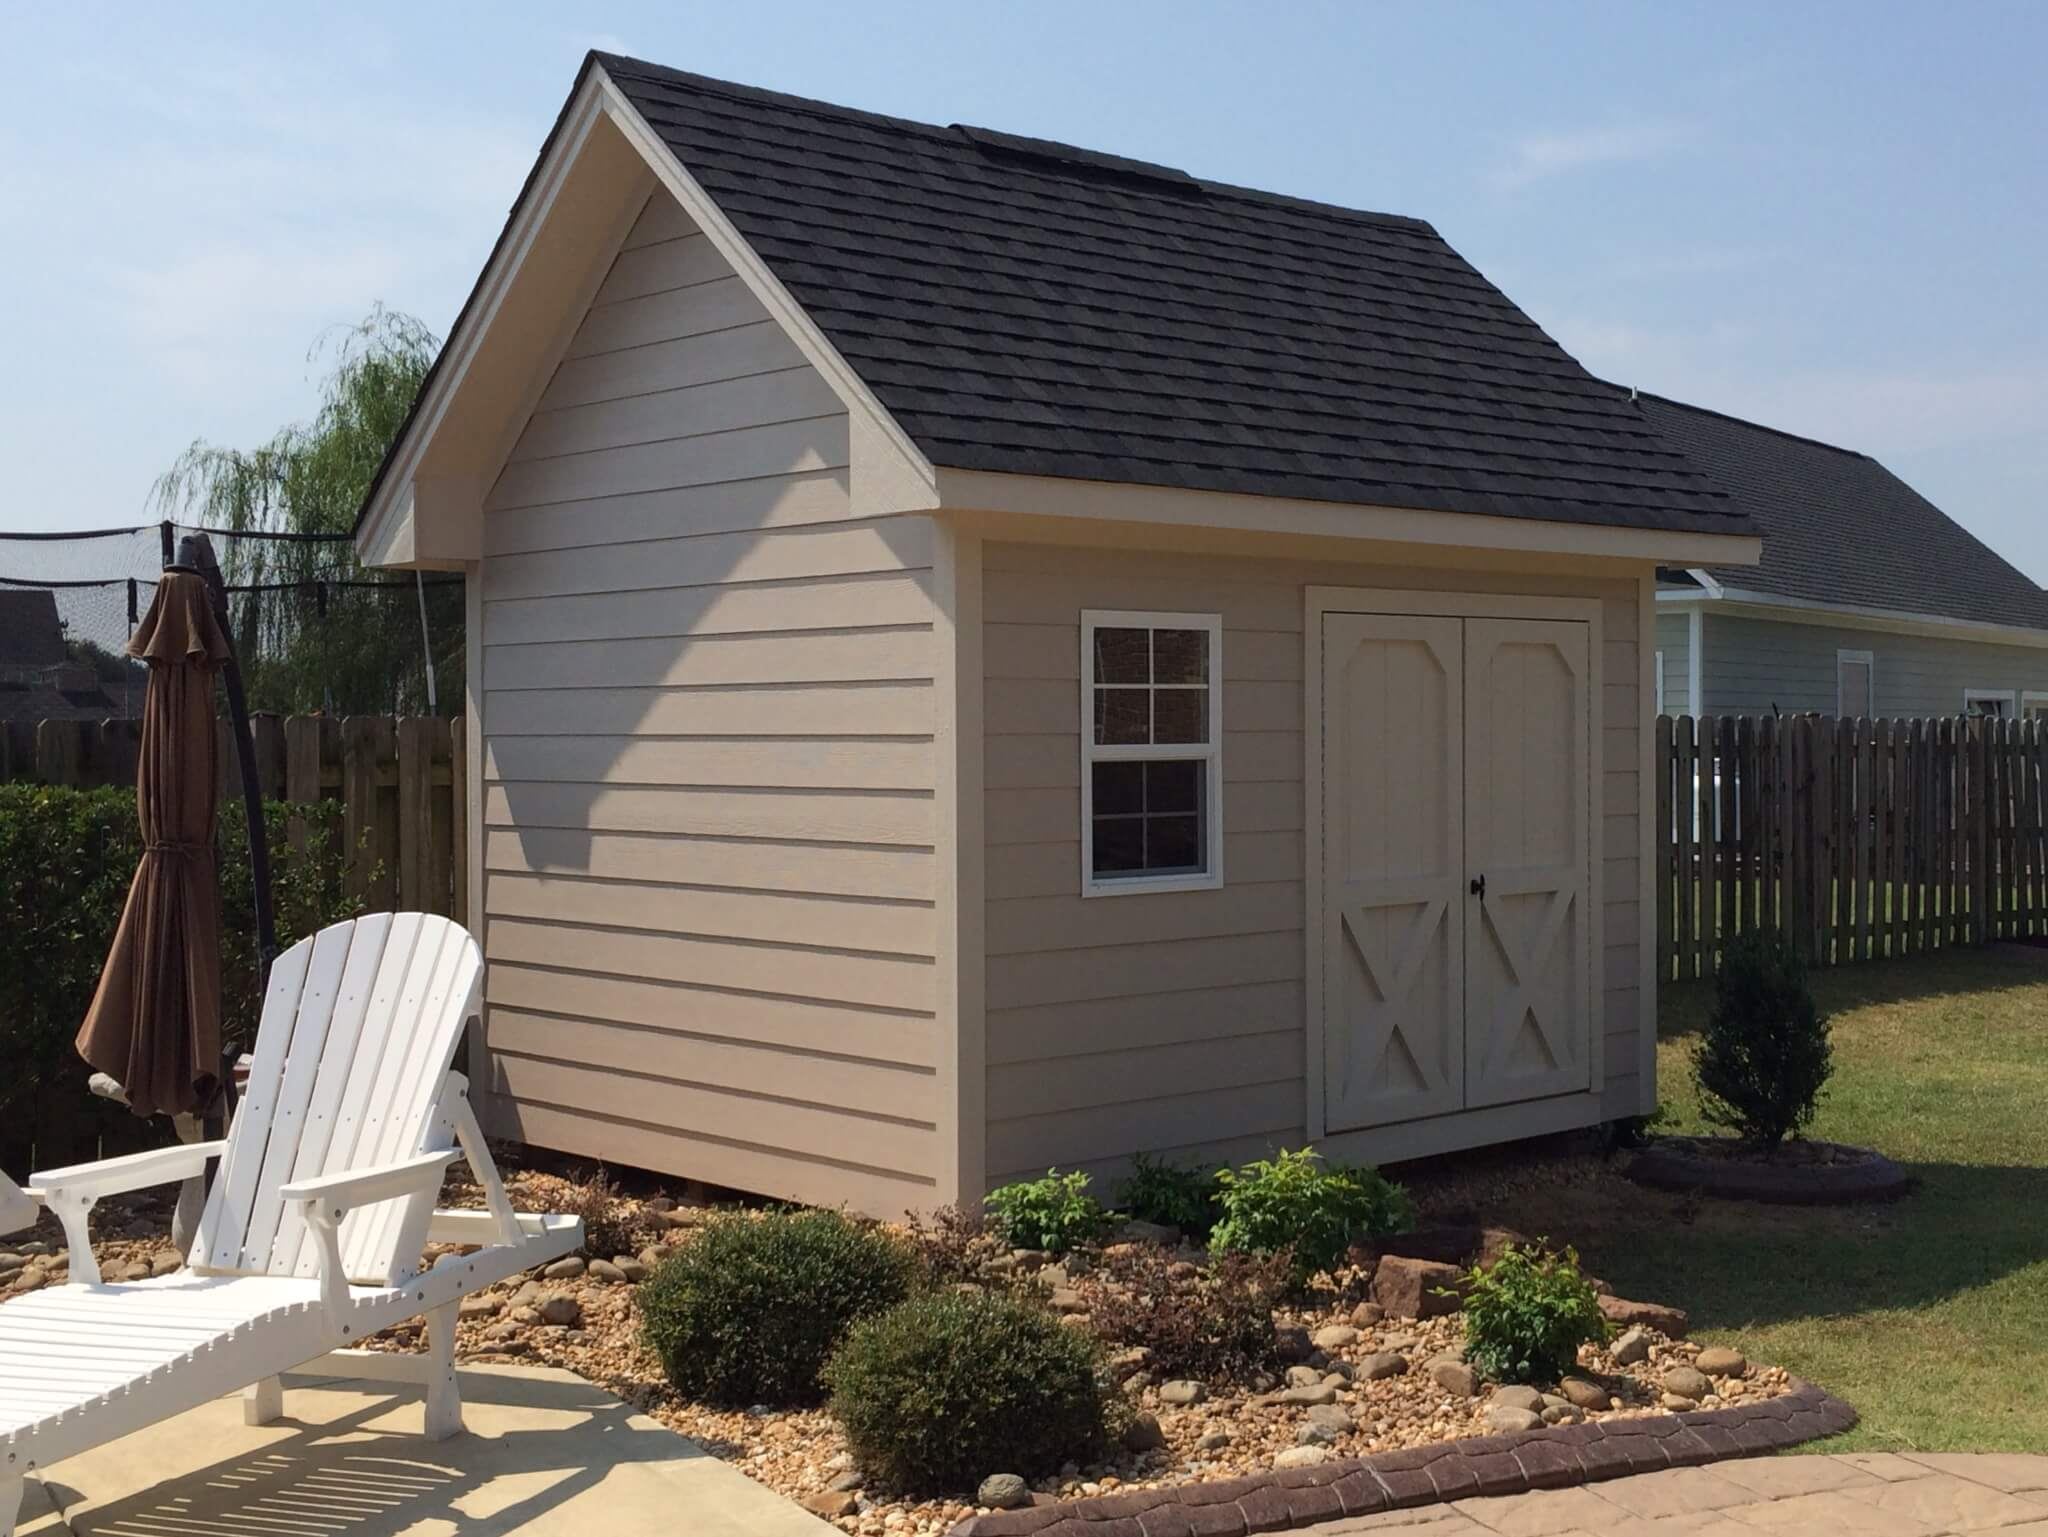 Garden Sheds Raleigh Nc unique garden sheds raleigh nc covering your storage needs and